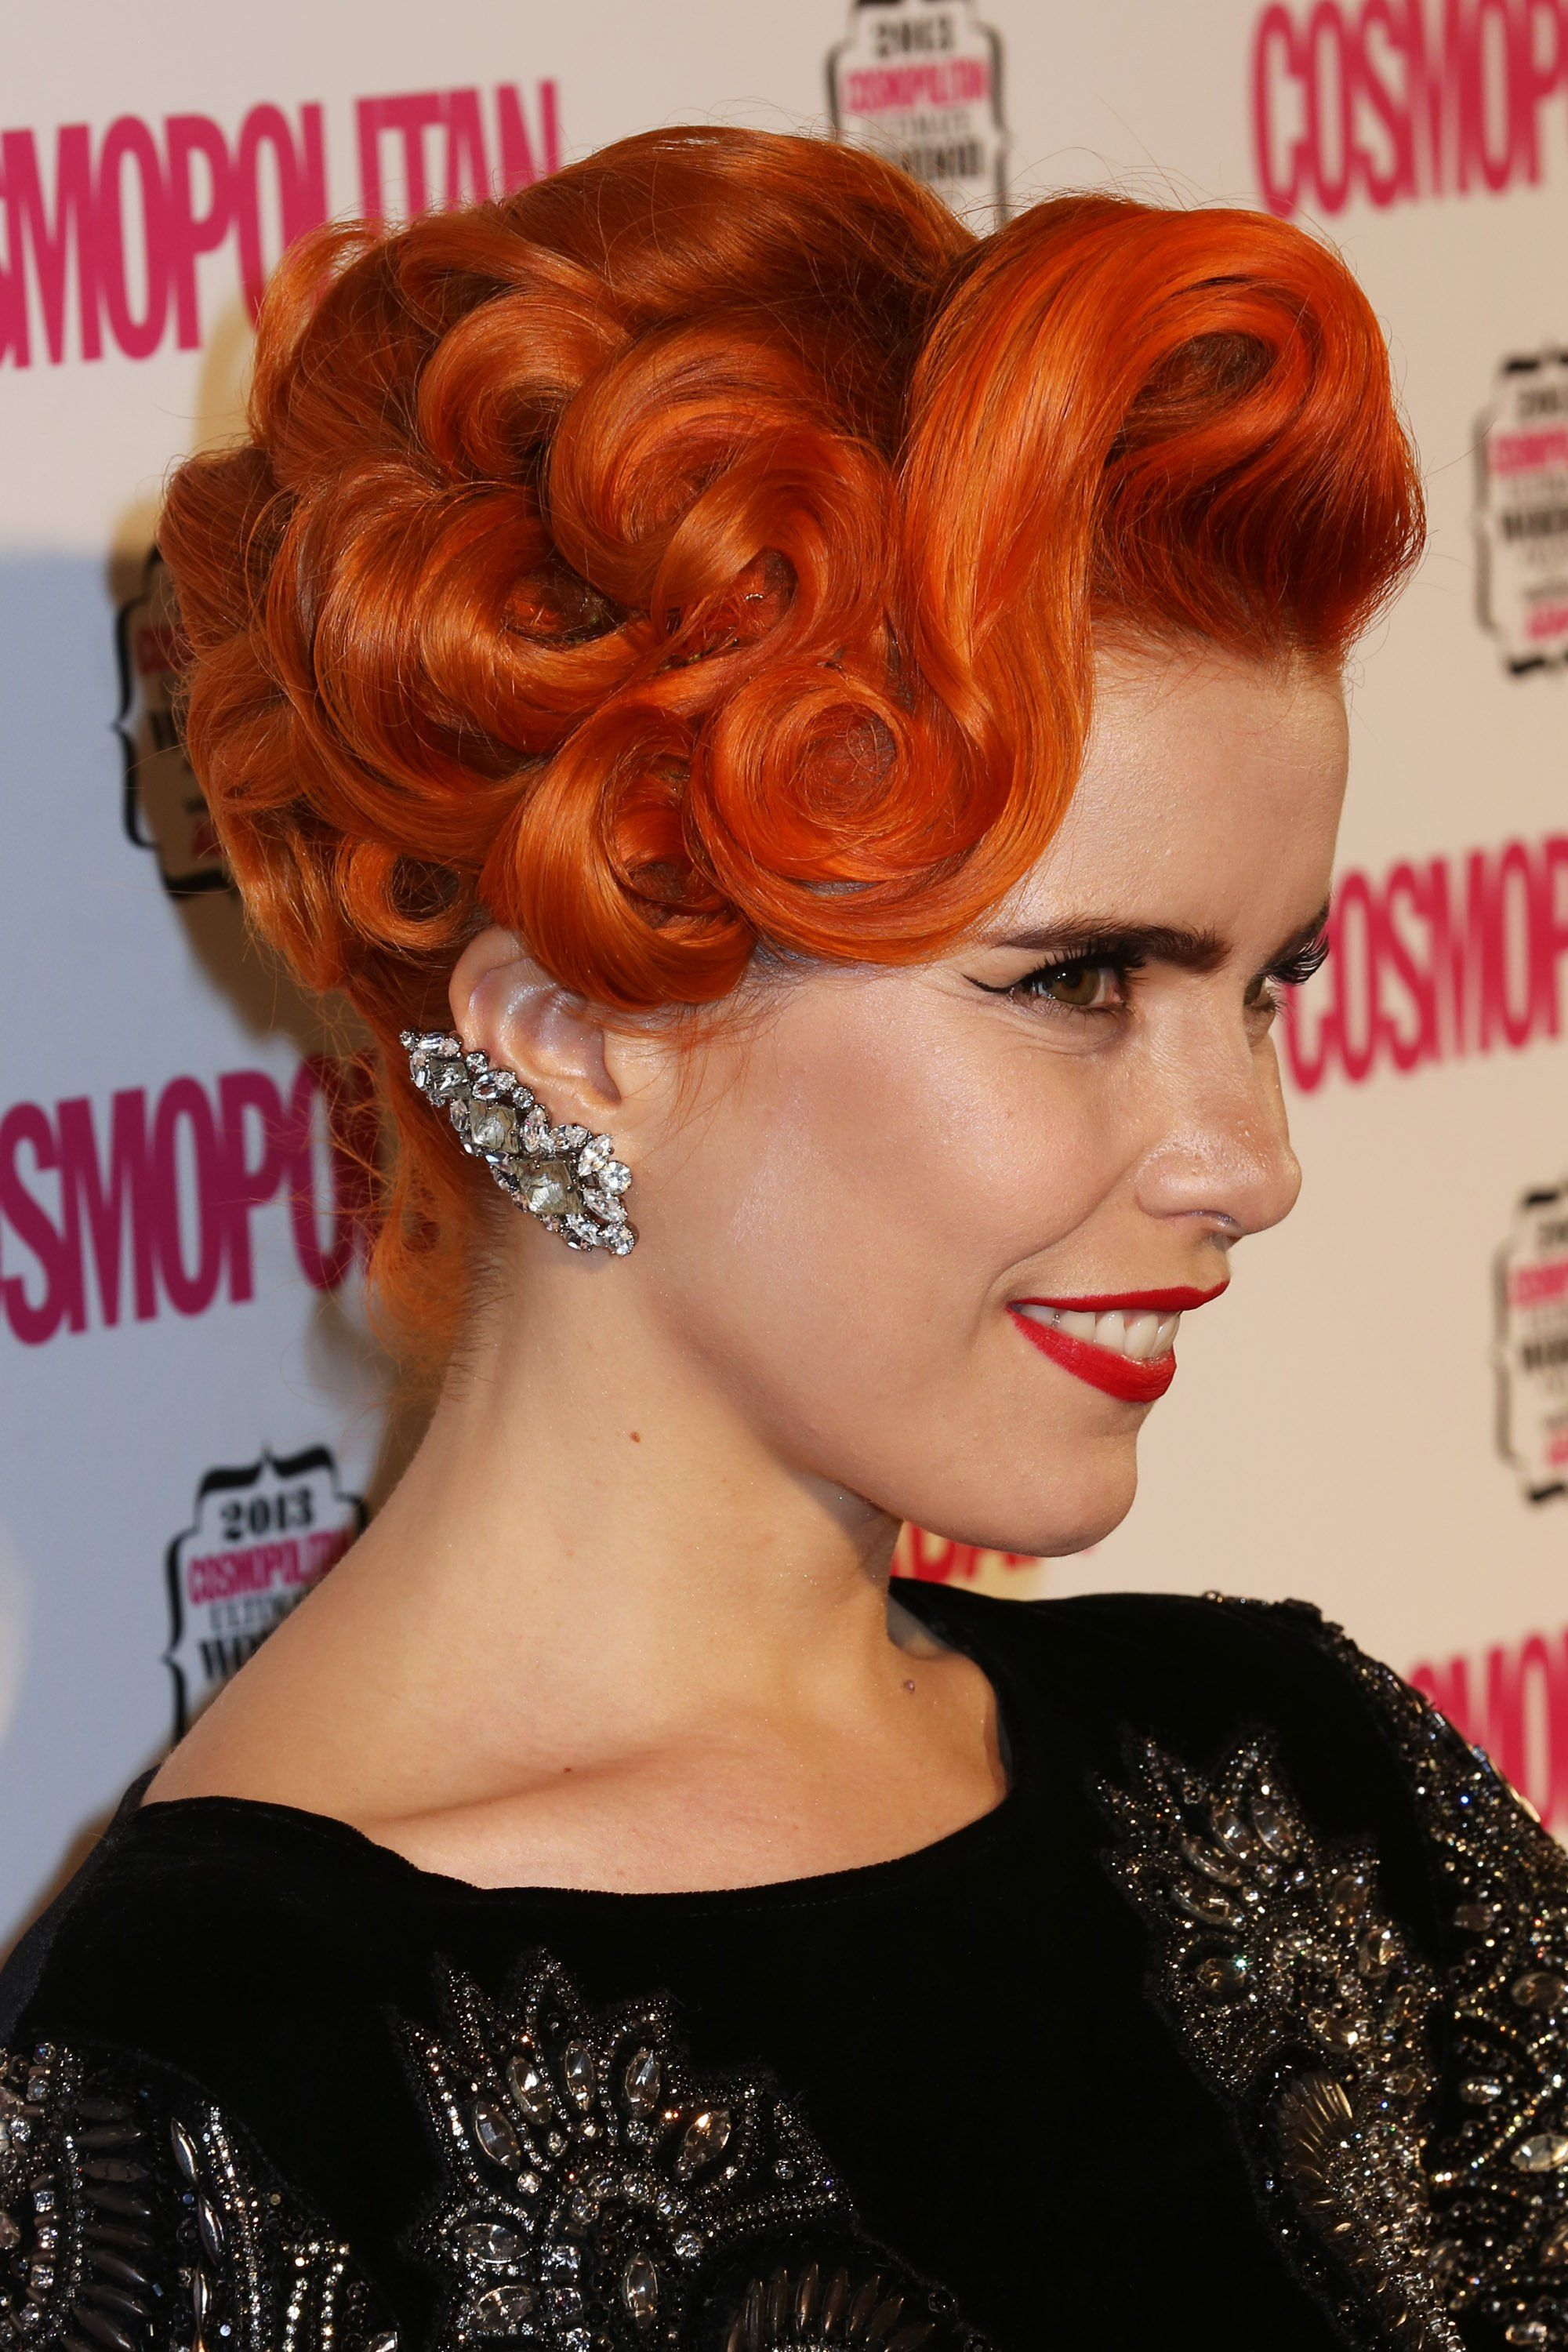 Will Paloma Faith Ever Run Out of Amazing Hairstyles